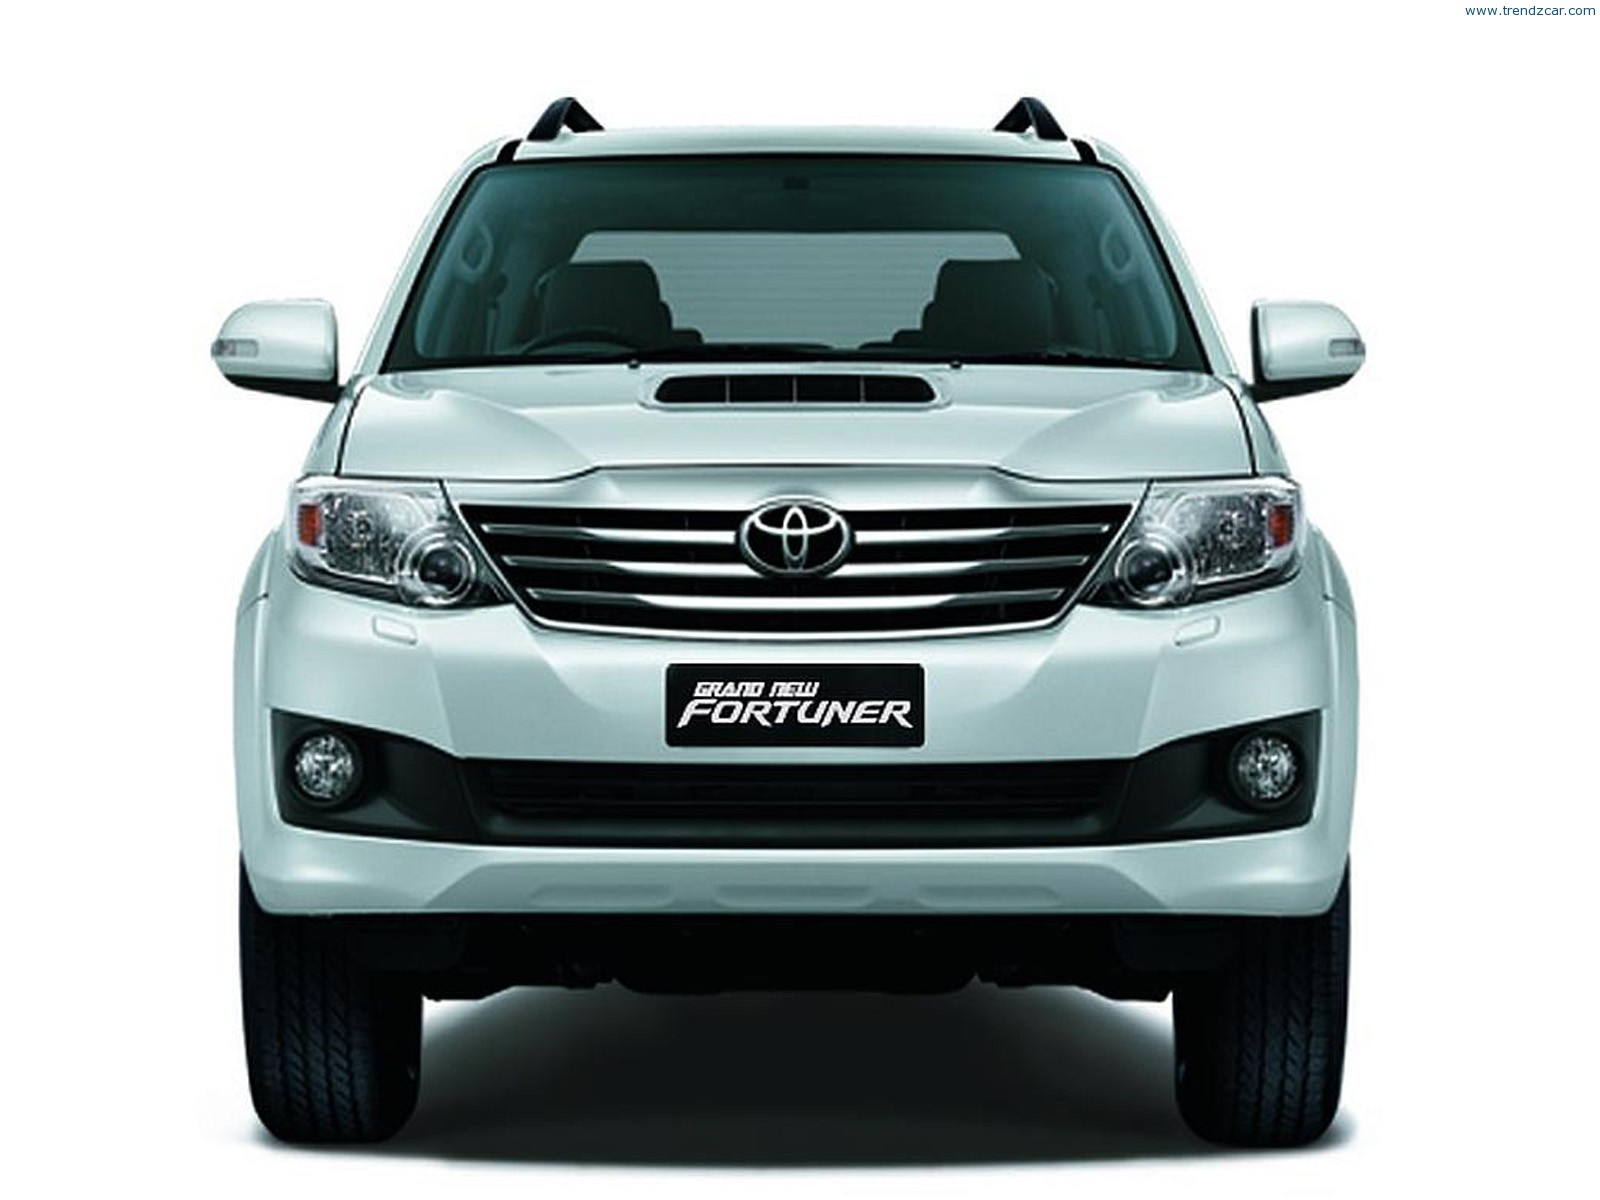 Image Toyota Fortuner 2.7 G Lux 4x2 A/T 1